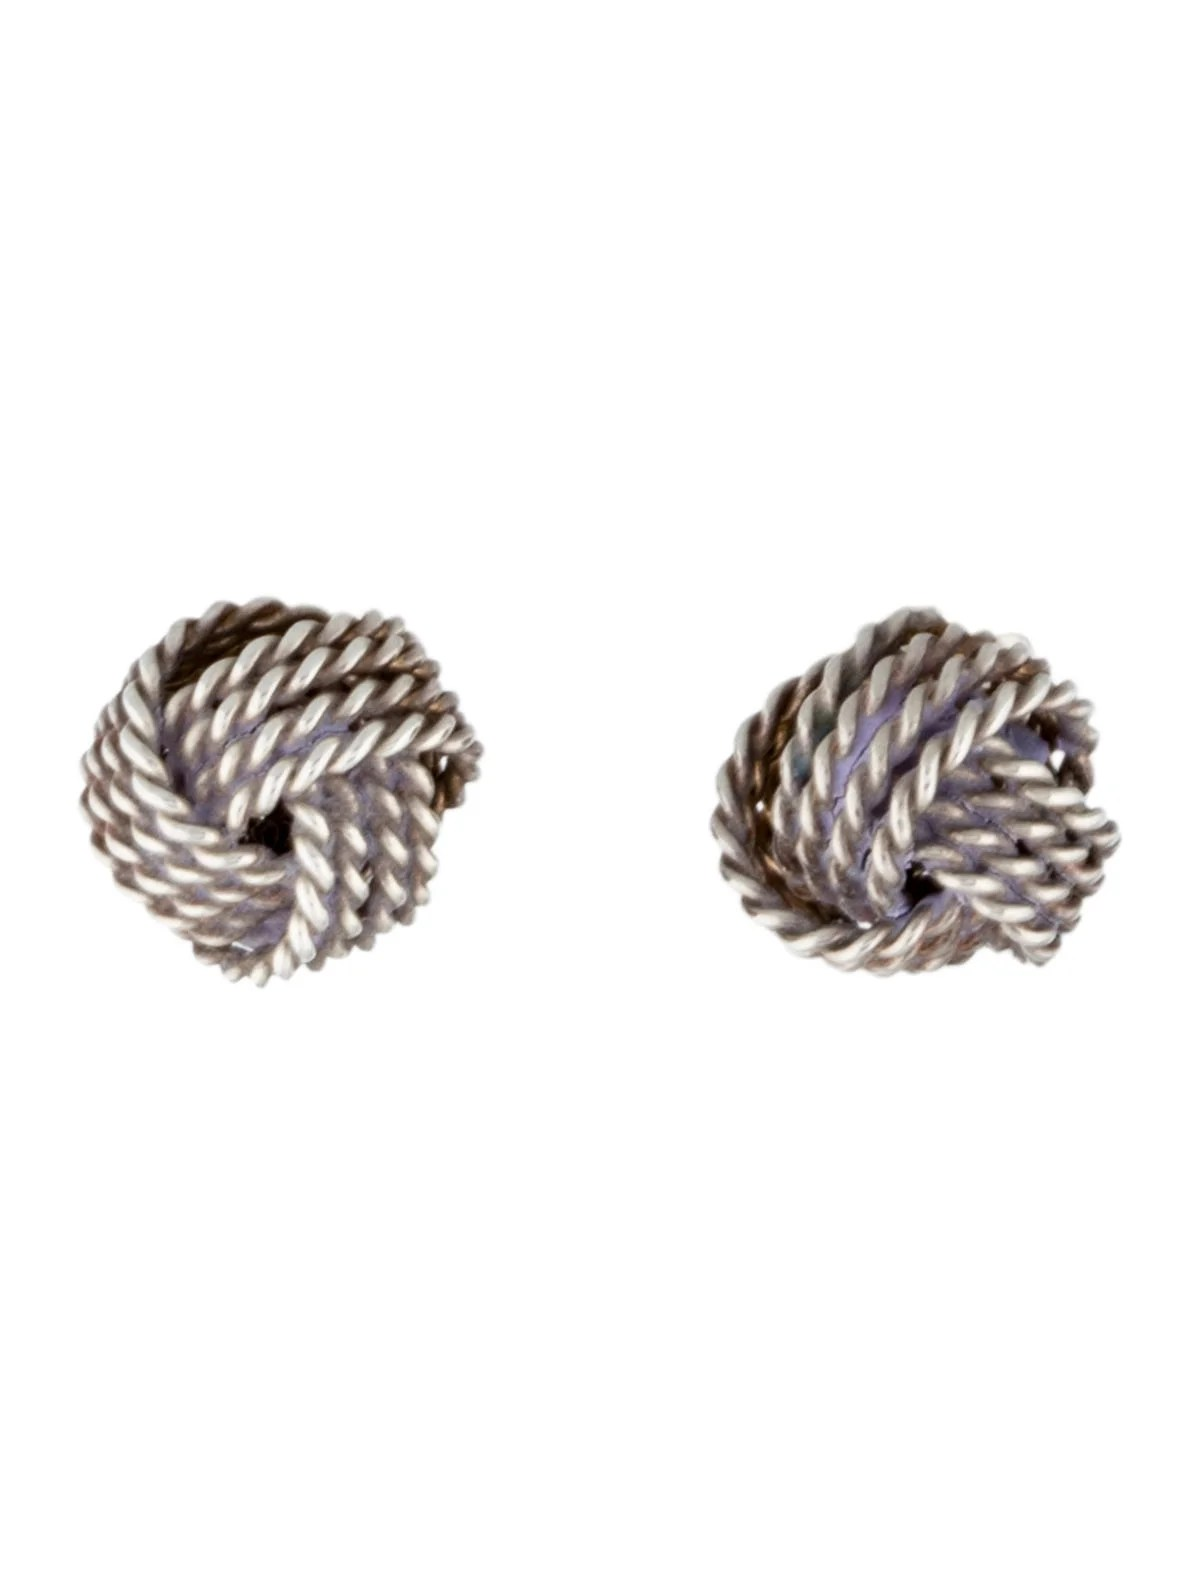 Tiffany & Co. 18K Twist Knot Earrings